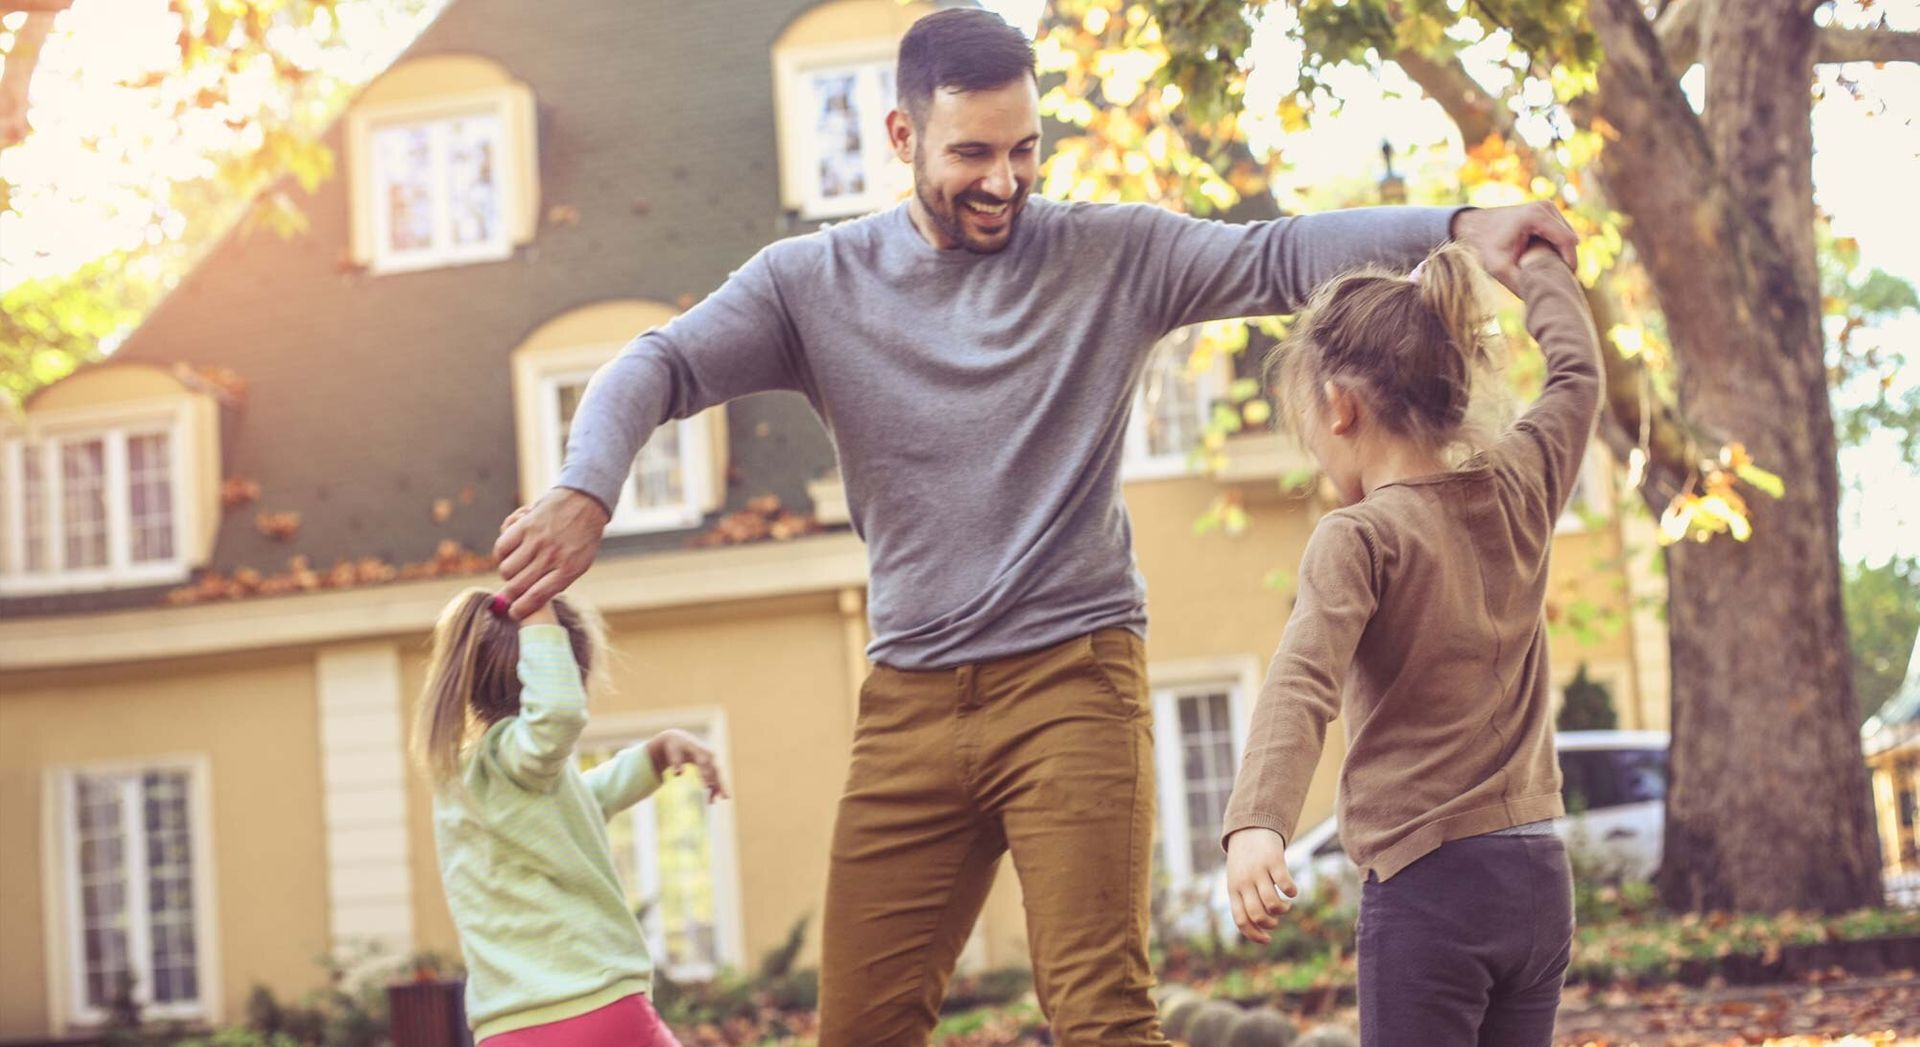 HELOC, cash out refinance or home equity loan?